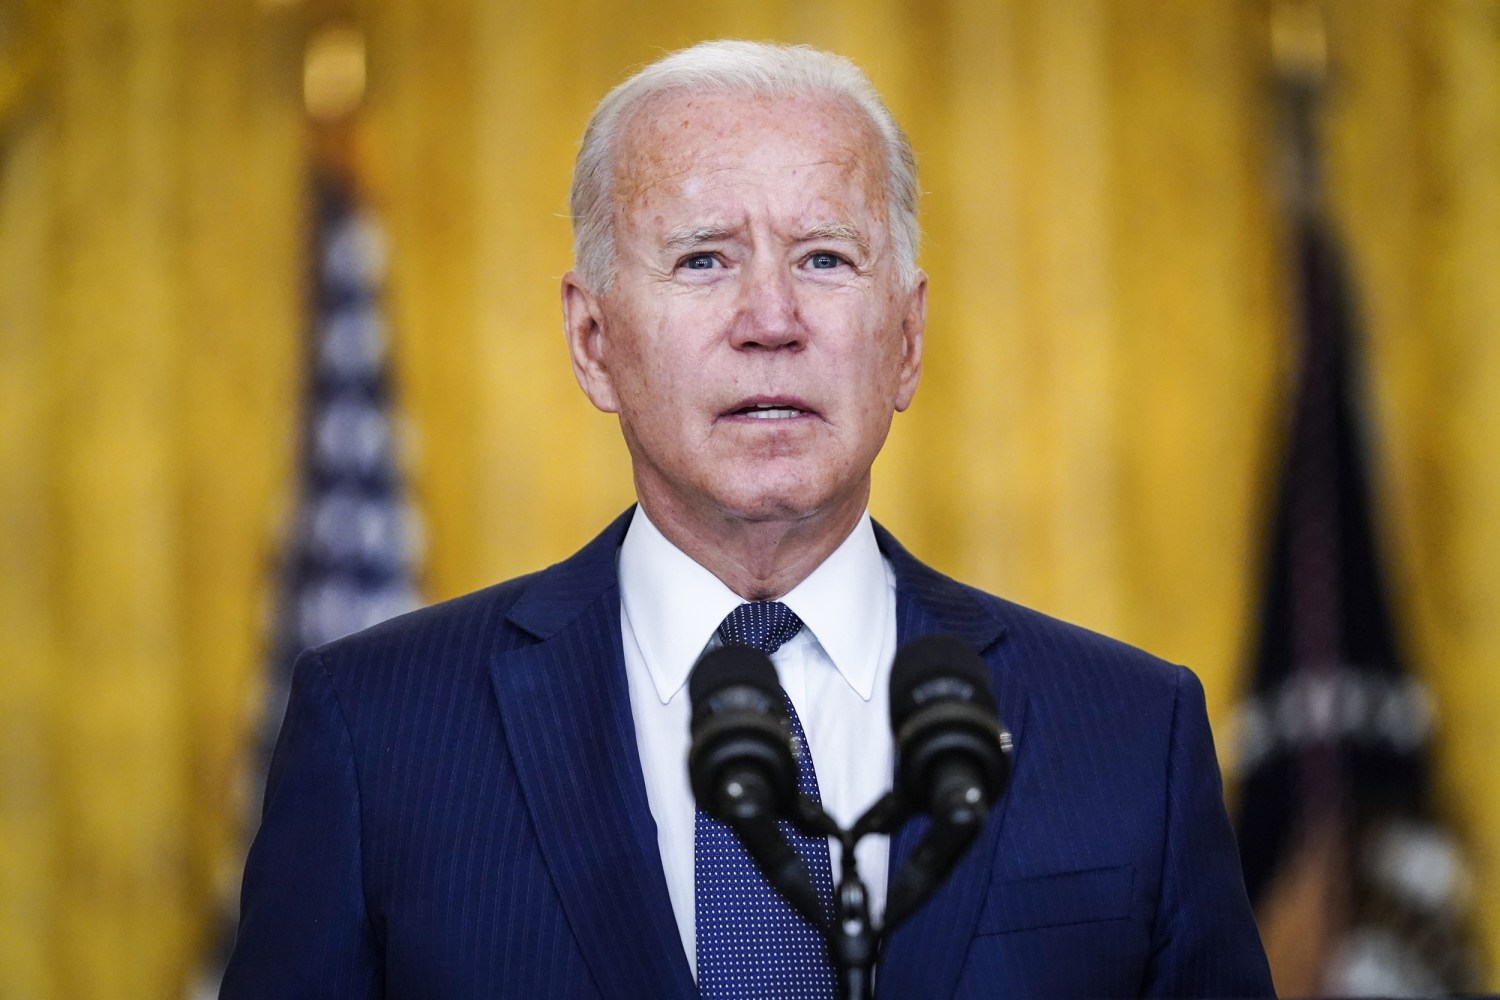 Biden Announces New Vaccine Requirements in US to Fight COVID